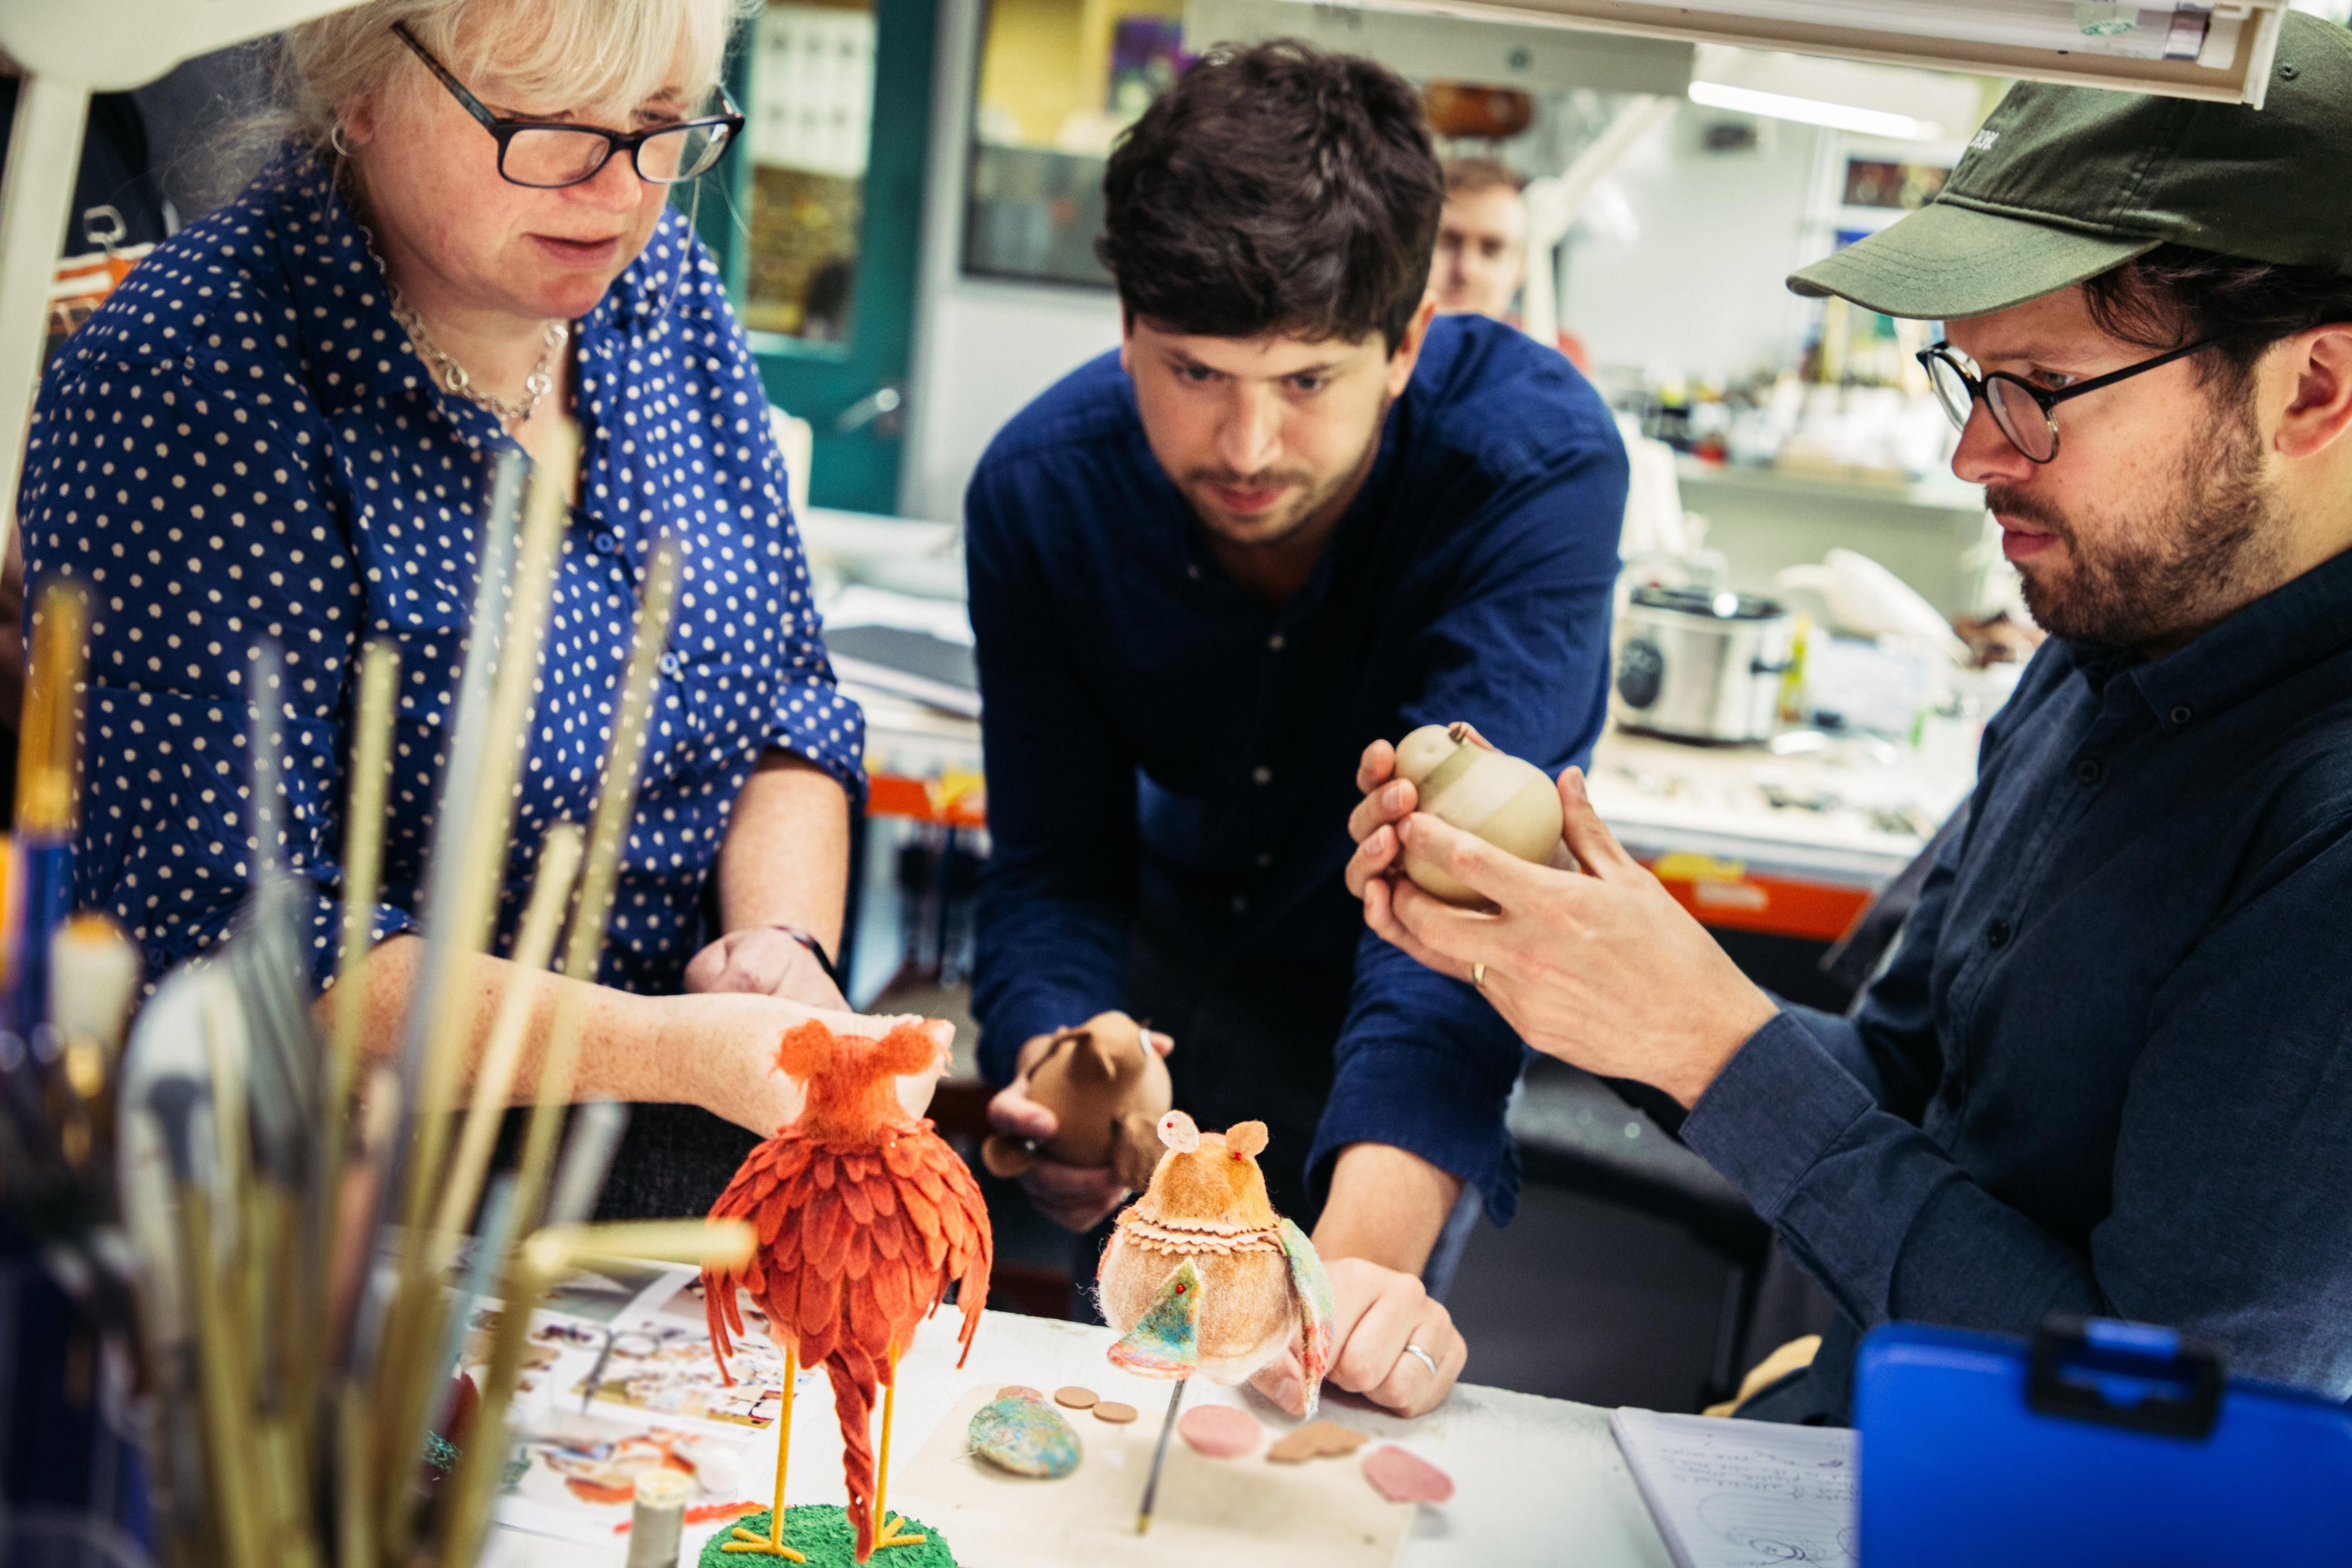 Hold the plasticine Aardman's new look for musical made